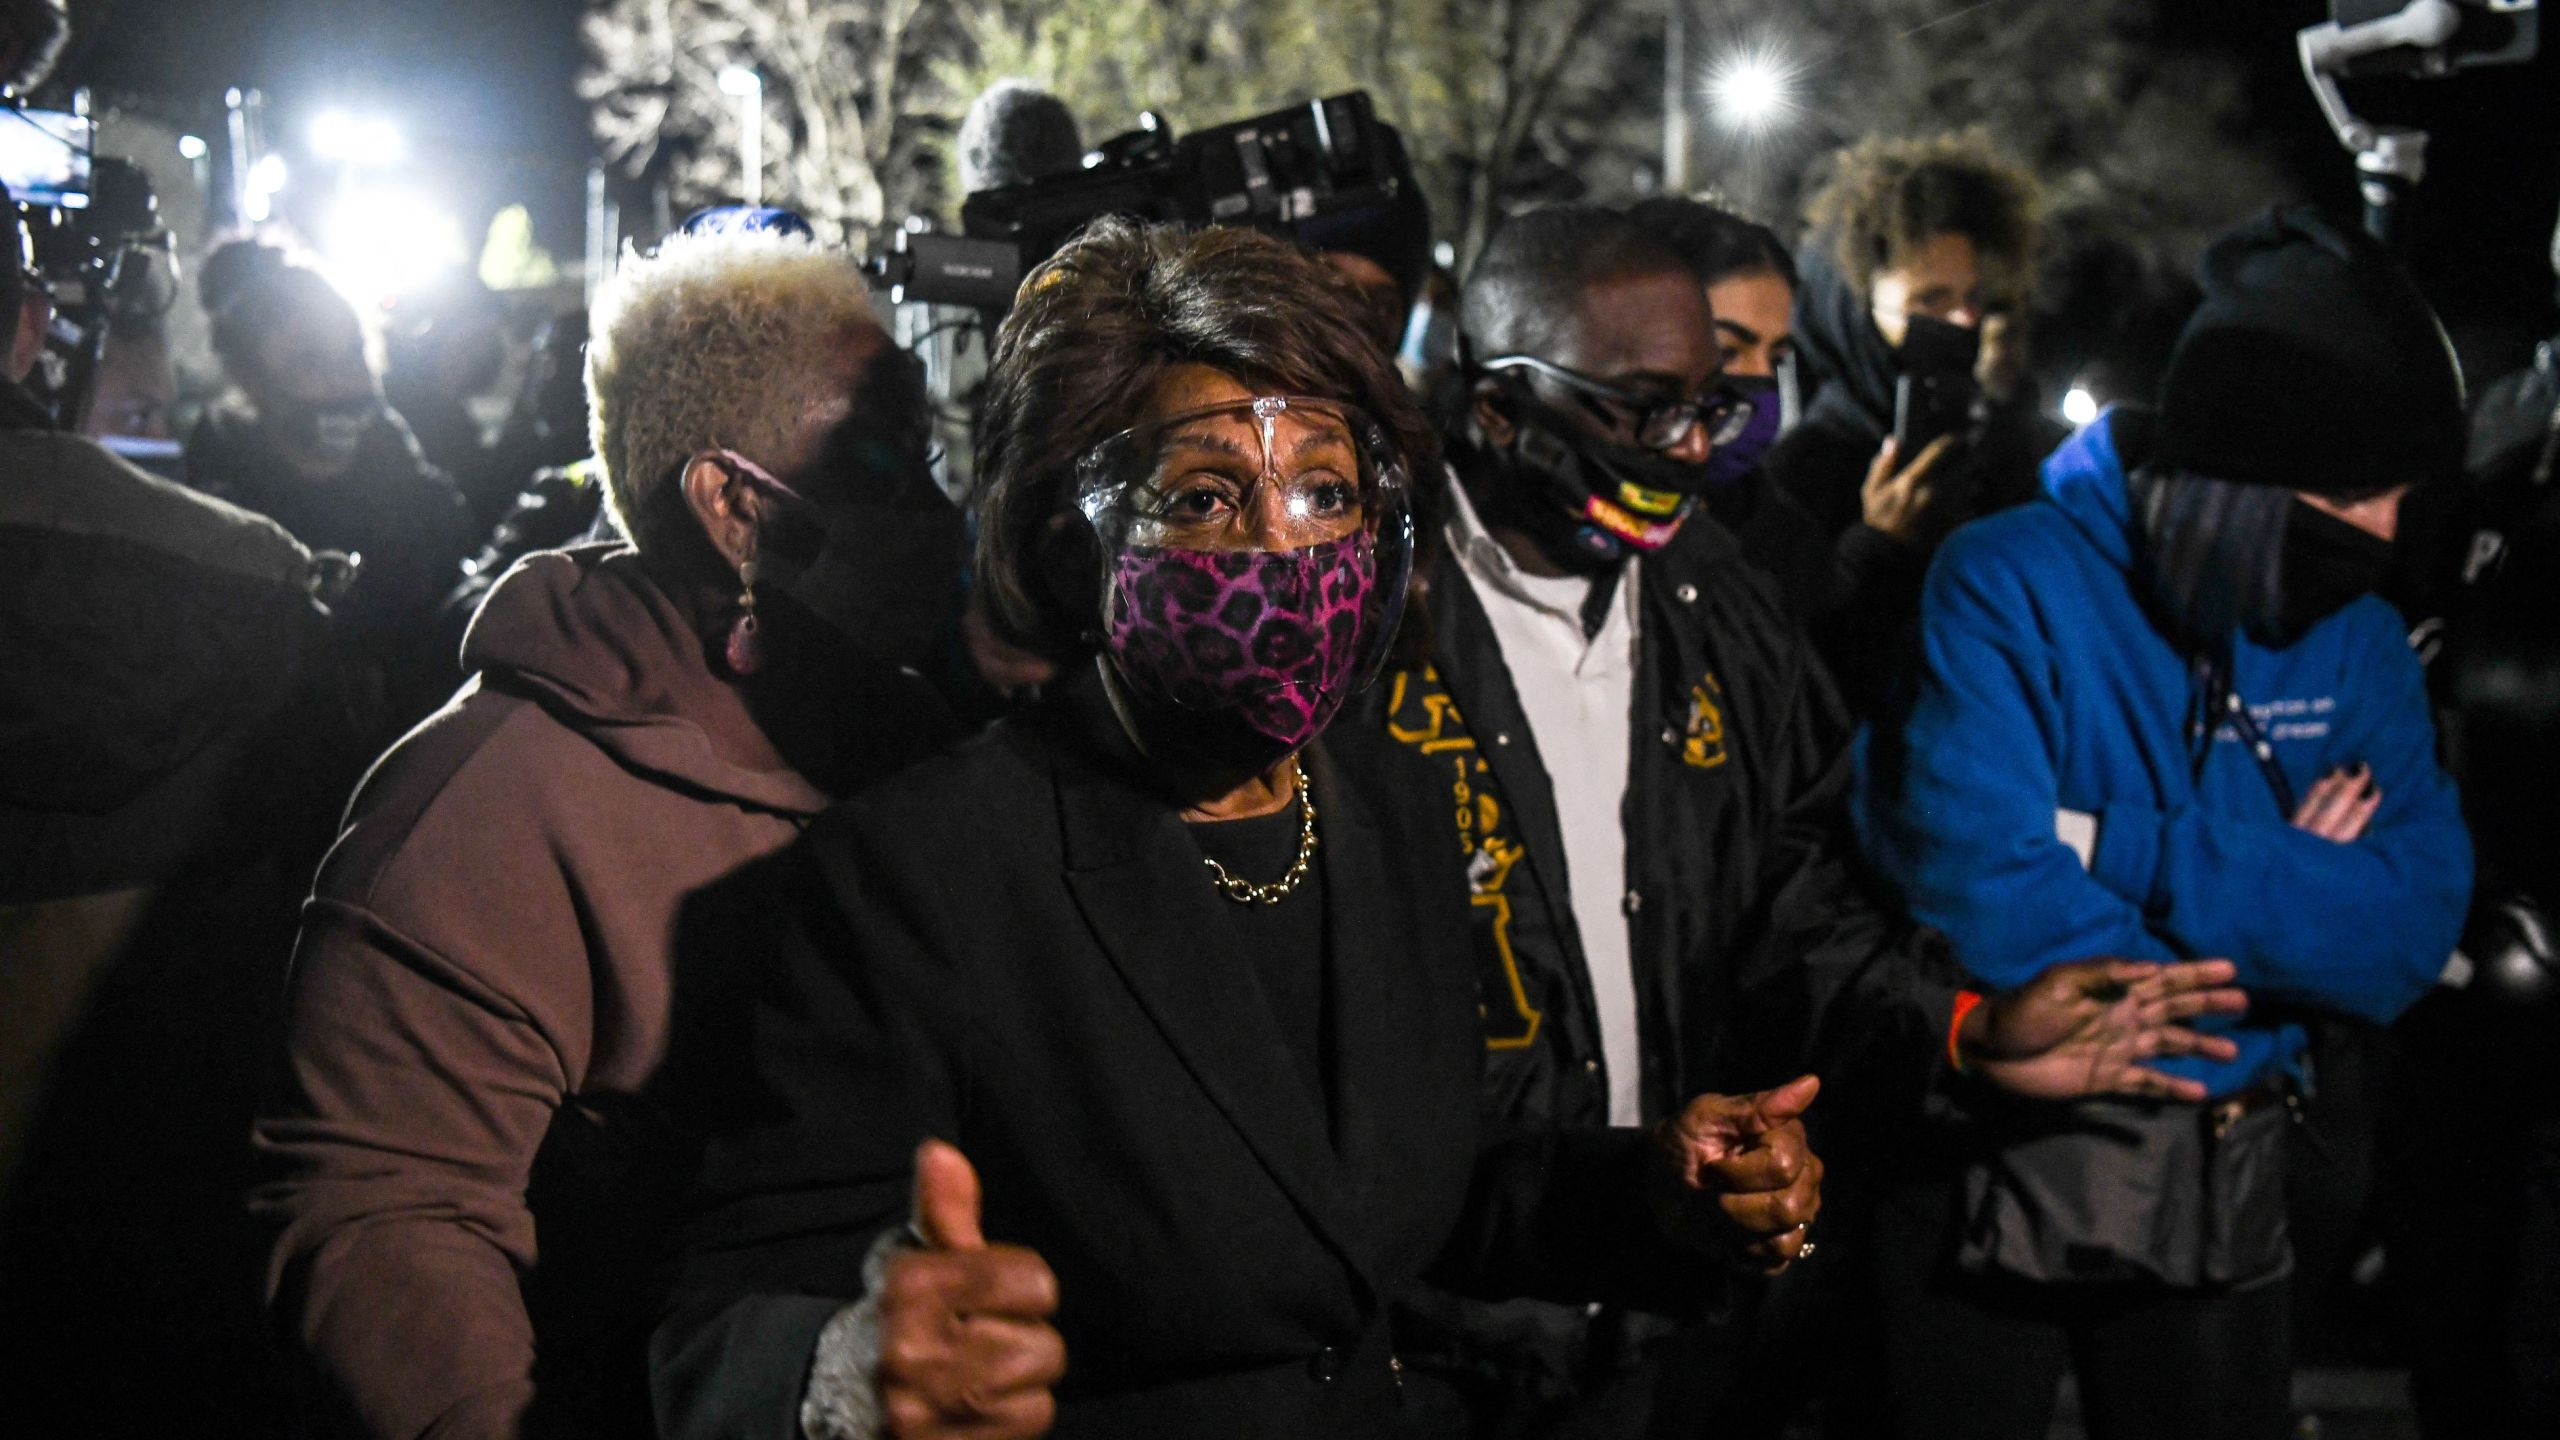 Rep. Maxine Waters speaks to the media during an ongoing protest at the Brooklyn Center Police Department in Brooklyn Centre, Minnesota on April 17, 2021. (CHANDAN KHANNA/AFP via Getty Images)